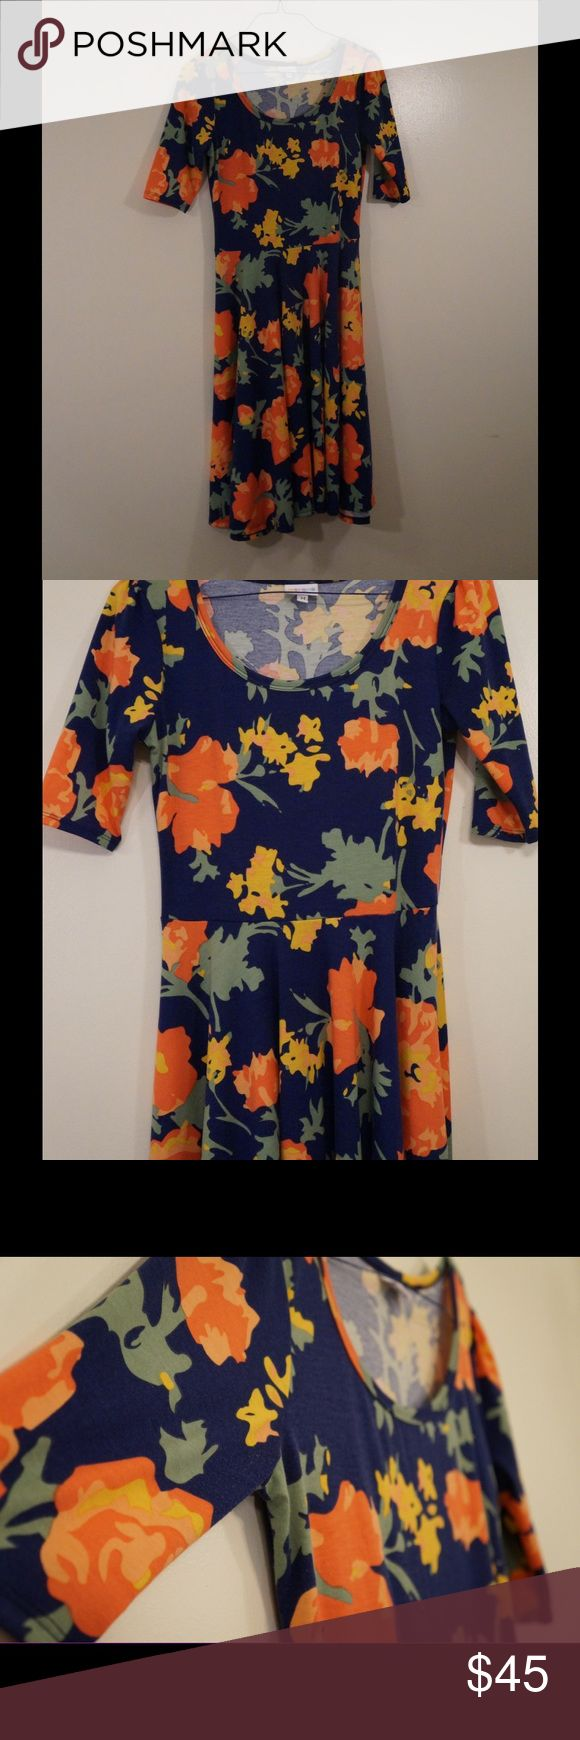 LuLaRoe Nicole Dress Great Nicole dress from LuLaRoe. I just have too much of it and have to start purging! Great condition and a great print I hate to sell. LuLaRoe Dresses